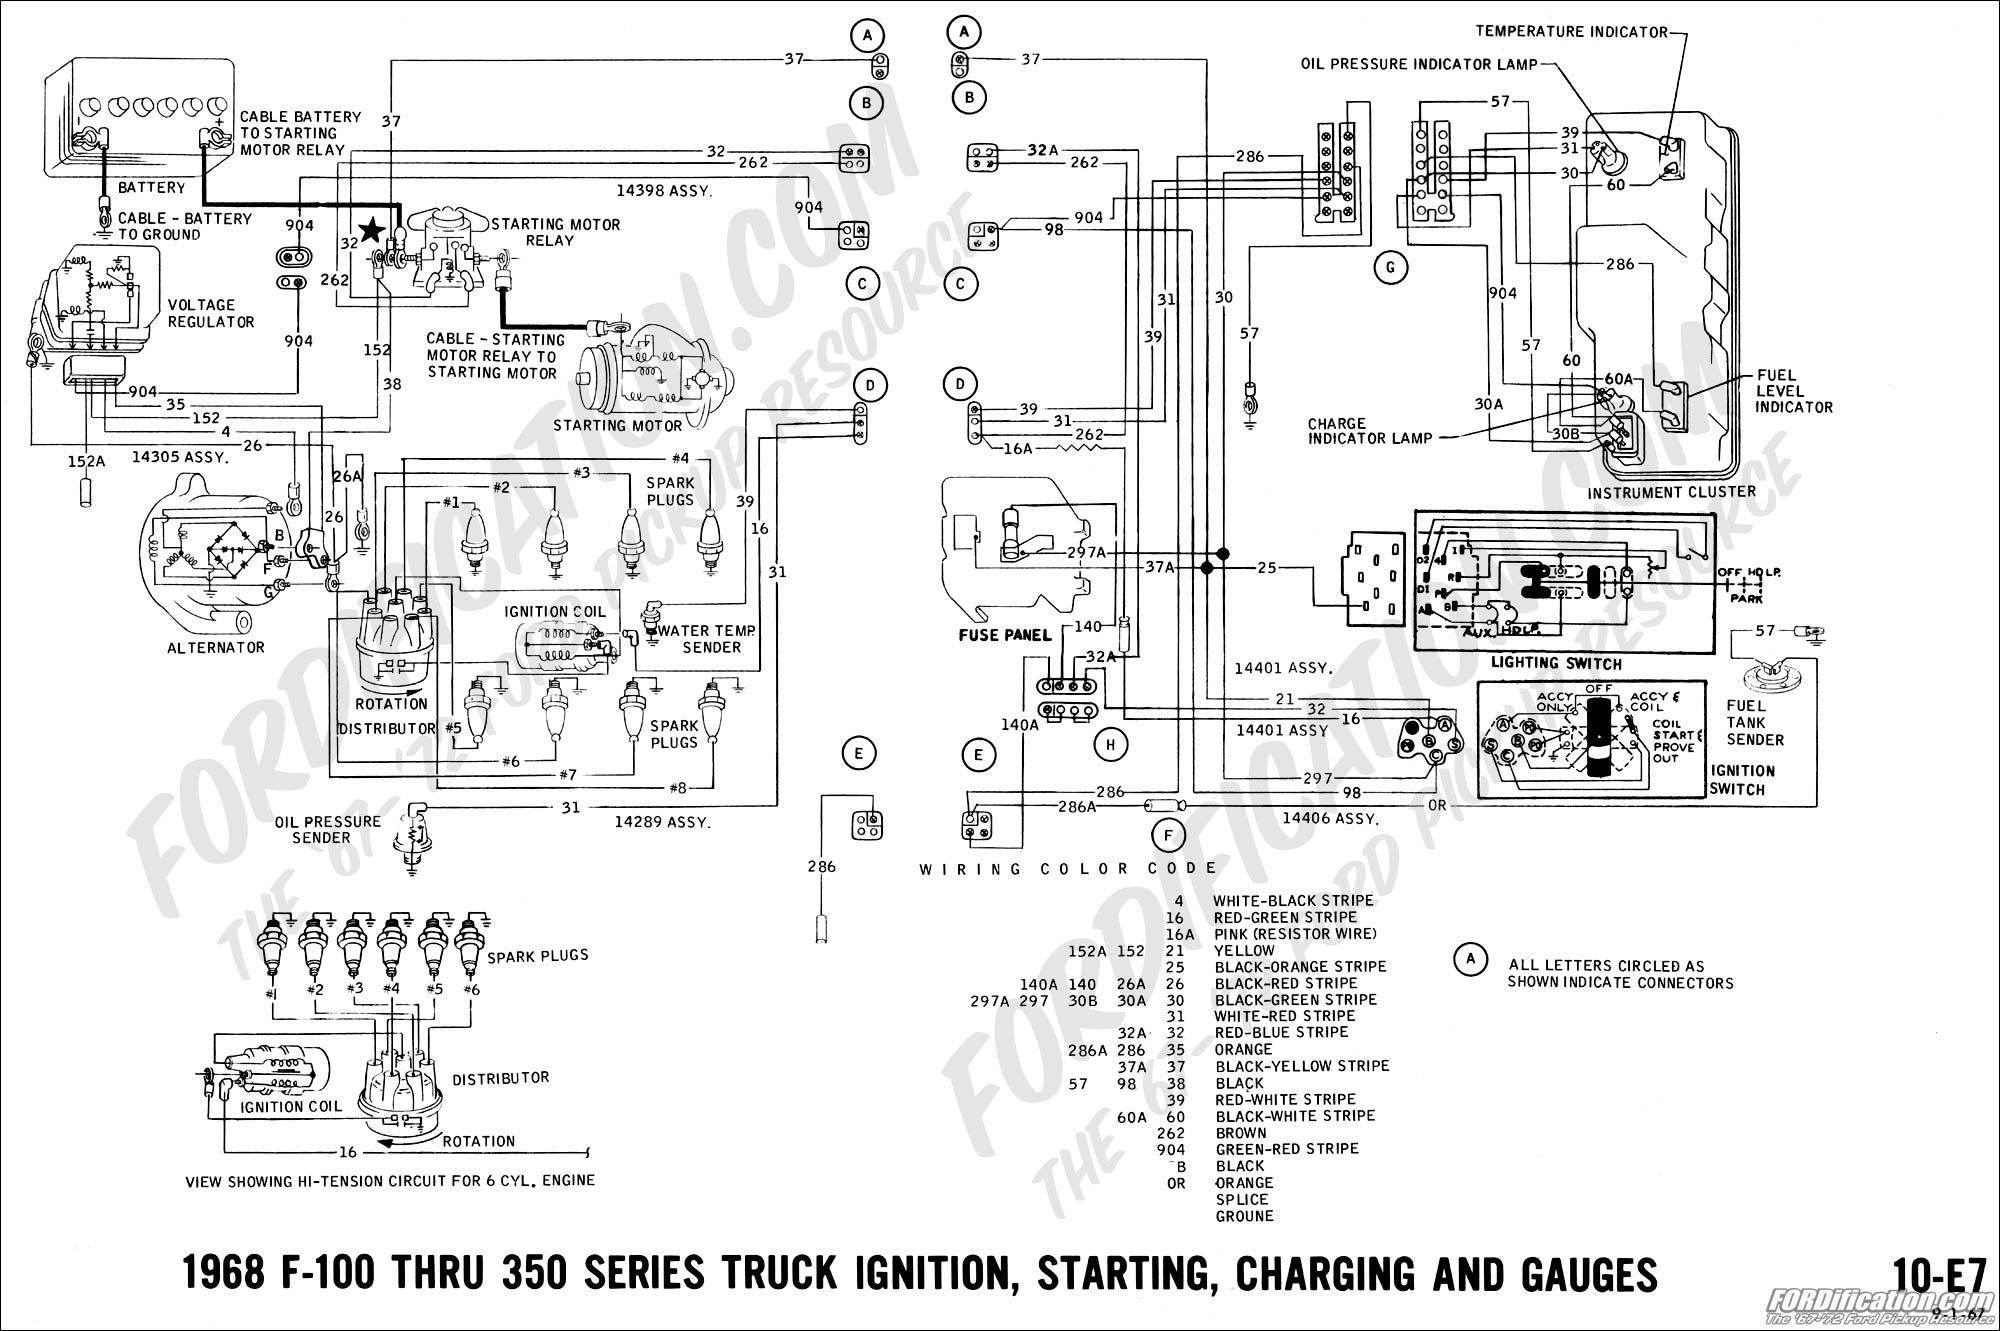 68 09 ford truck technical drawings and schematics section h wiring 1999 F150 Radio Wiring Diagram at sewacar.co